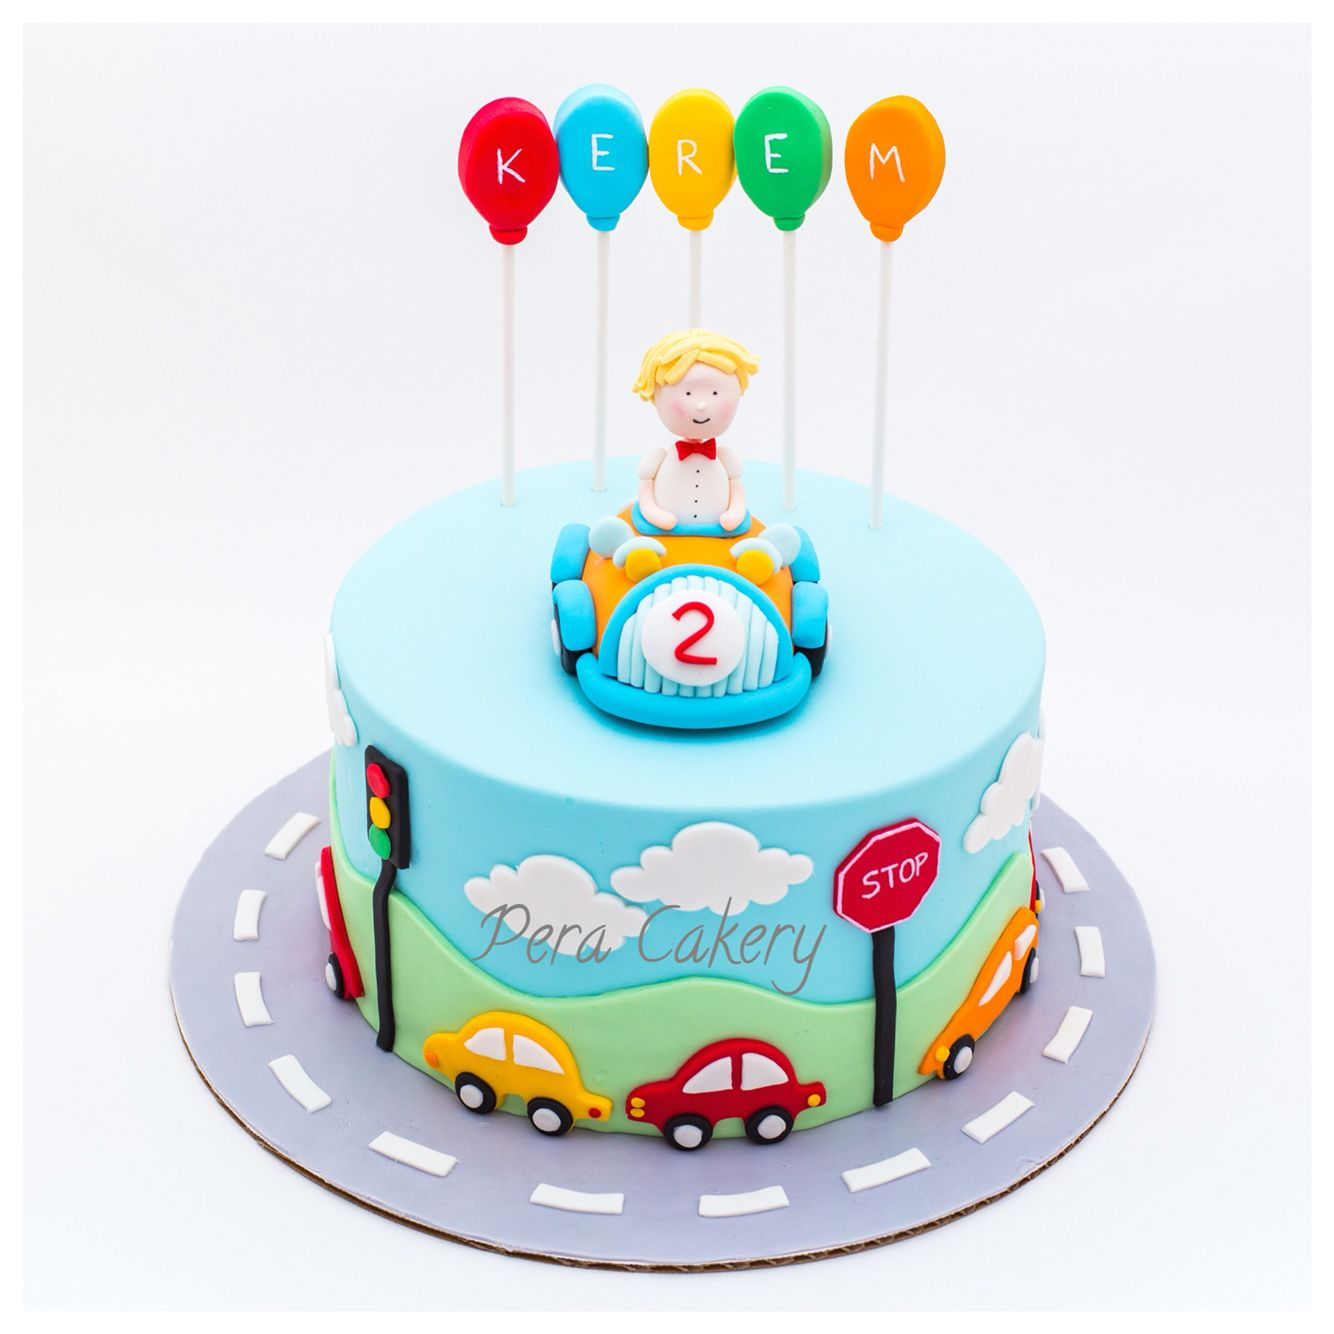 Cake Design For 2 Year Old Baby Girl : Car cake for a 2 year old boy Pera Cakery Cakes ...